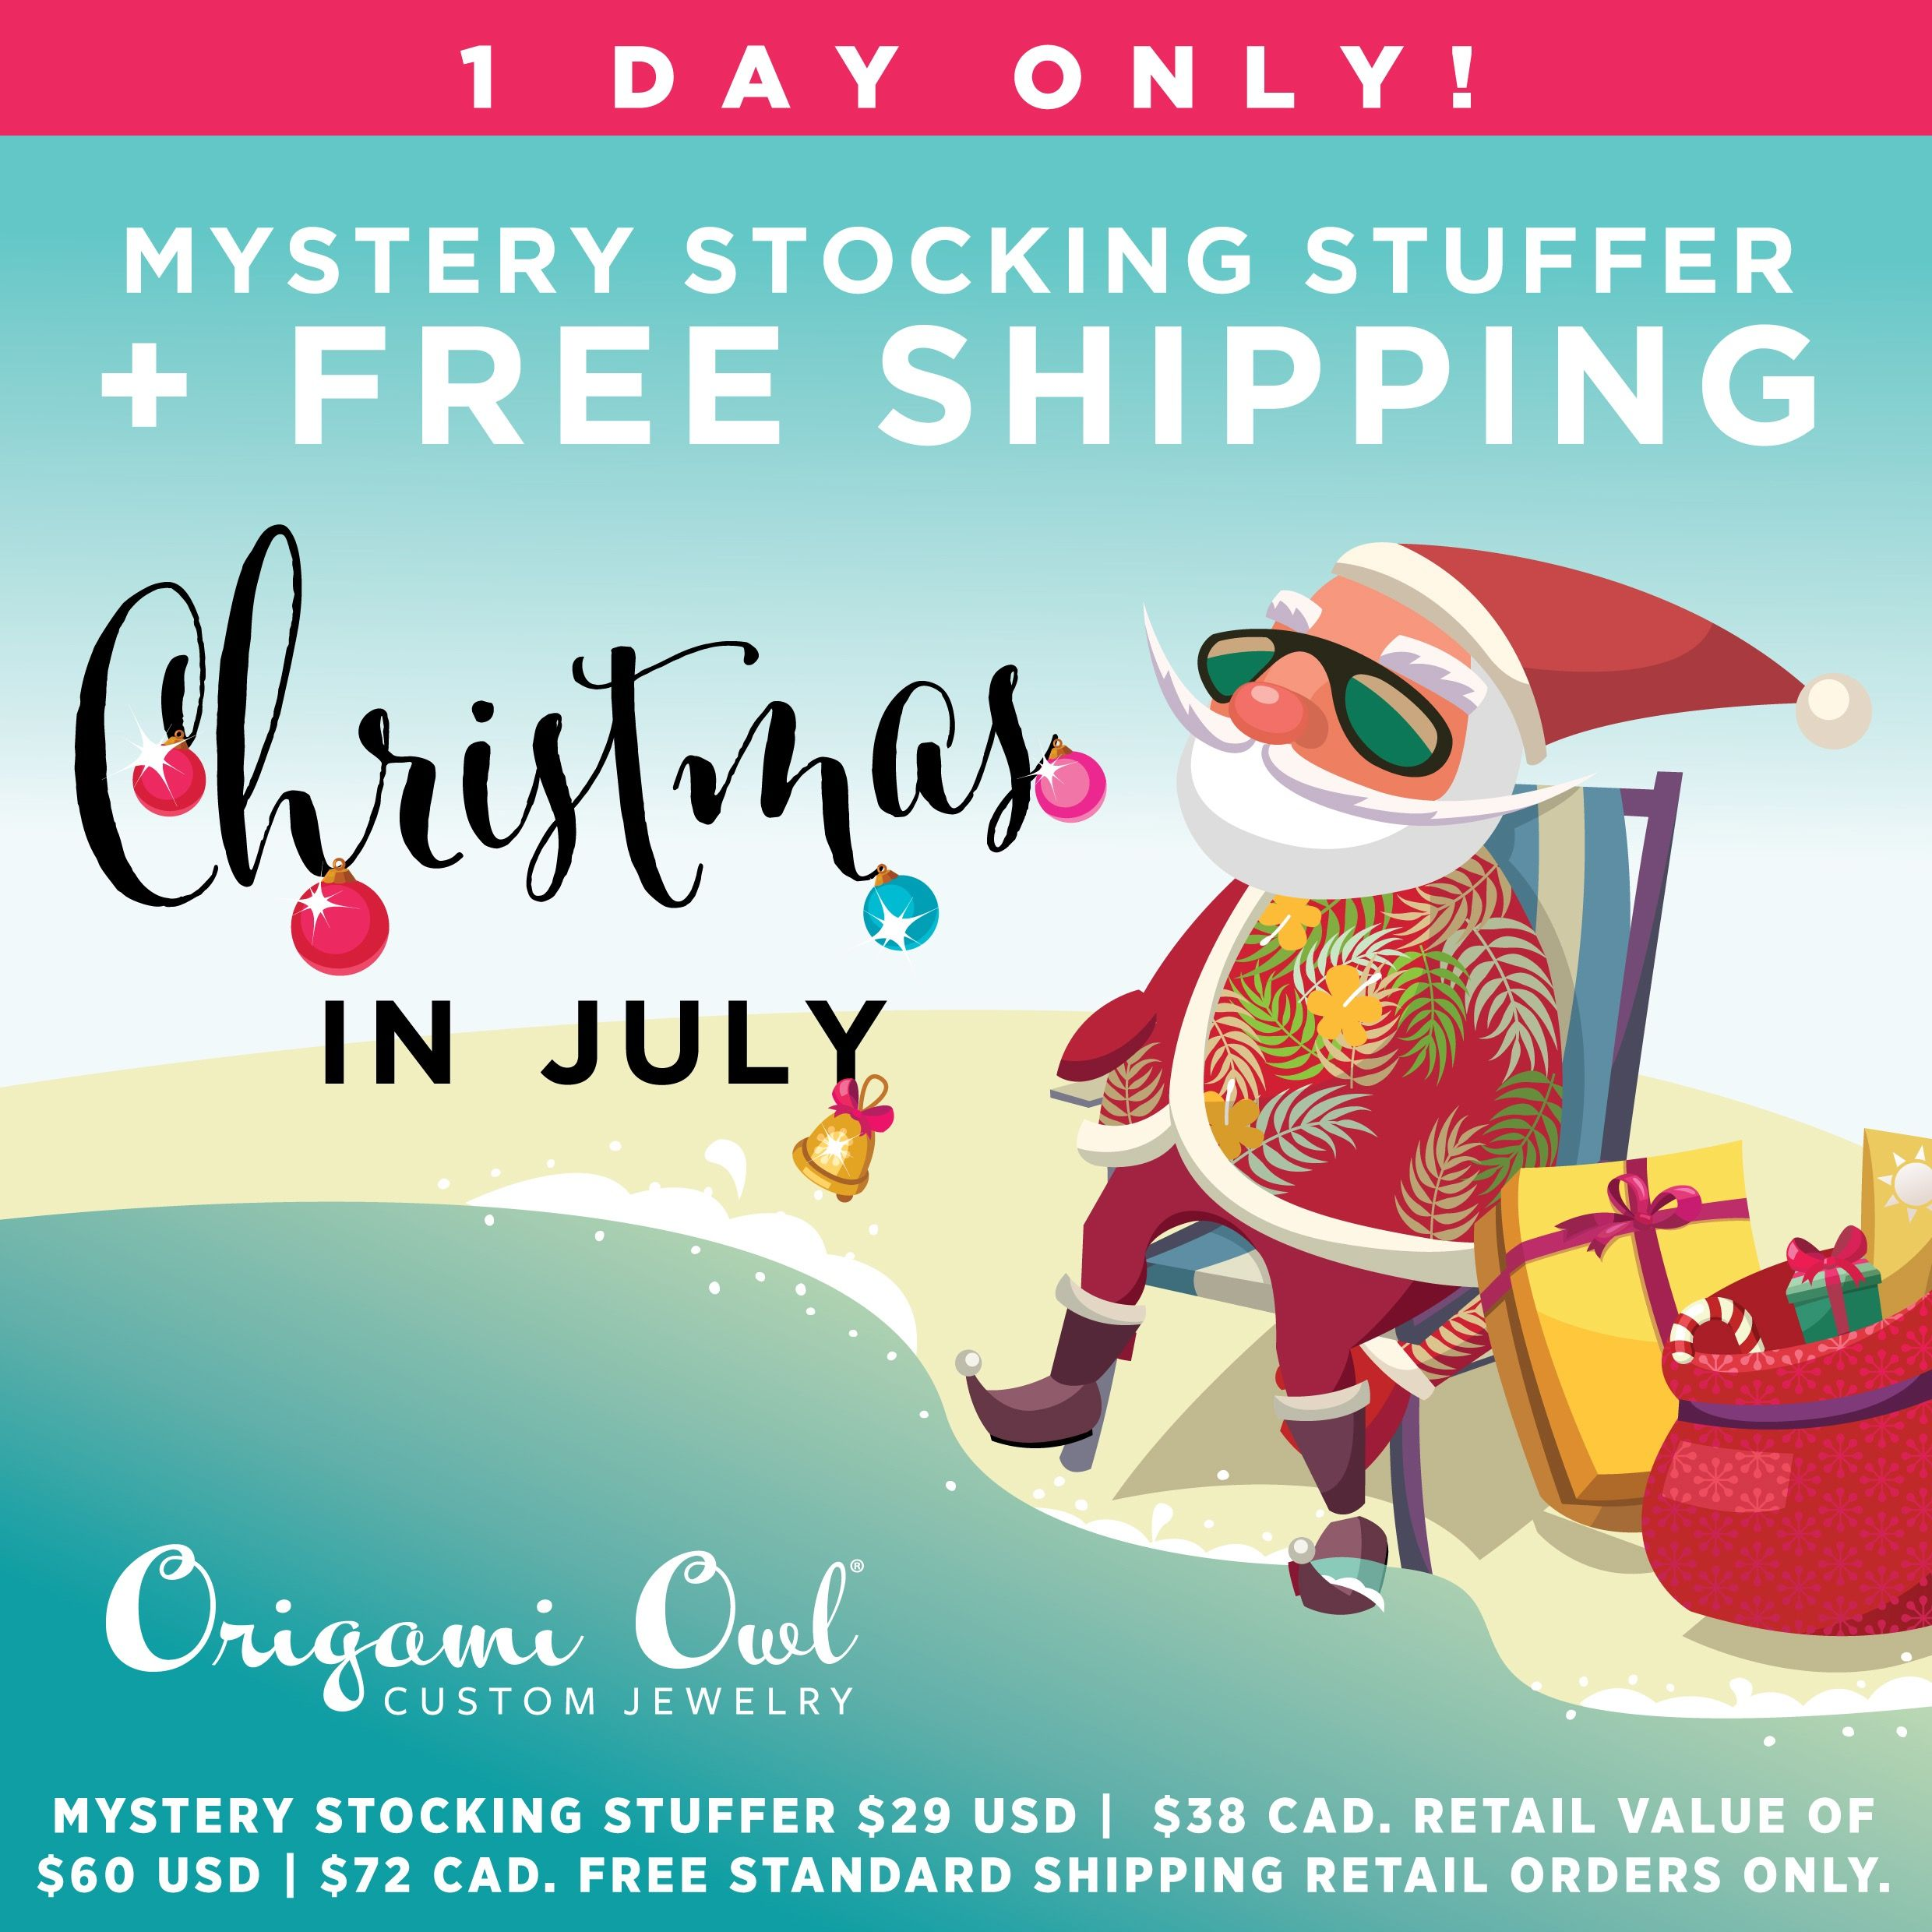 Christmas In July Free Graphics.Ho Ho Hoot Merry Christmas In July At Origami Owl We Re